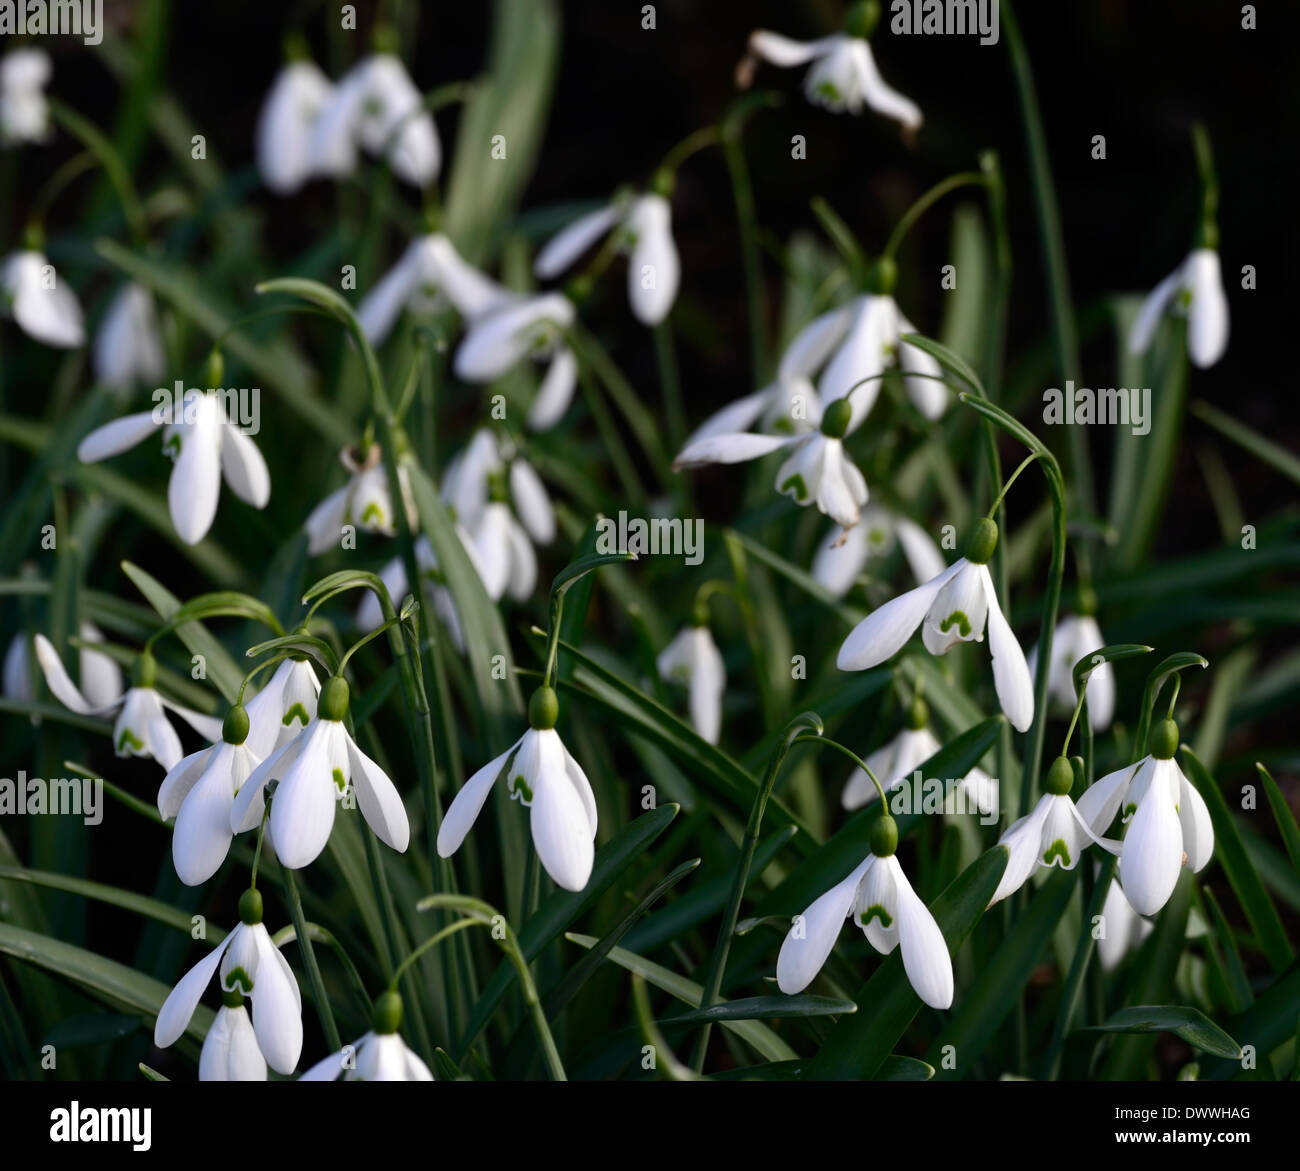 Galanthus magnet snowdrop white flowers green markings flower bulbs galanthus magnet snowdrop white flowers green markings flower bulbs snowdrops spring flowering bloom mightylinksfo